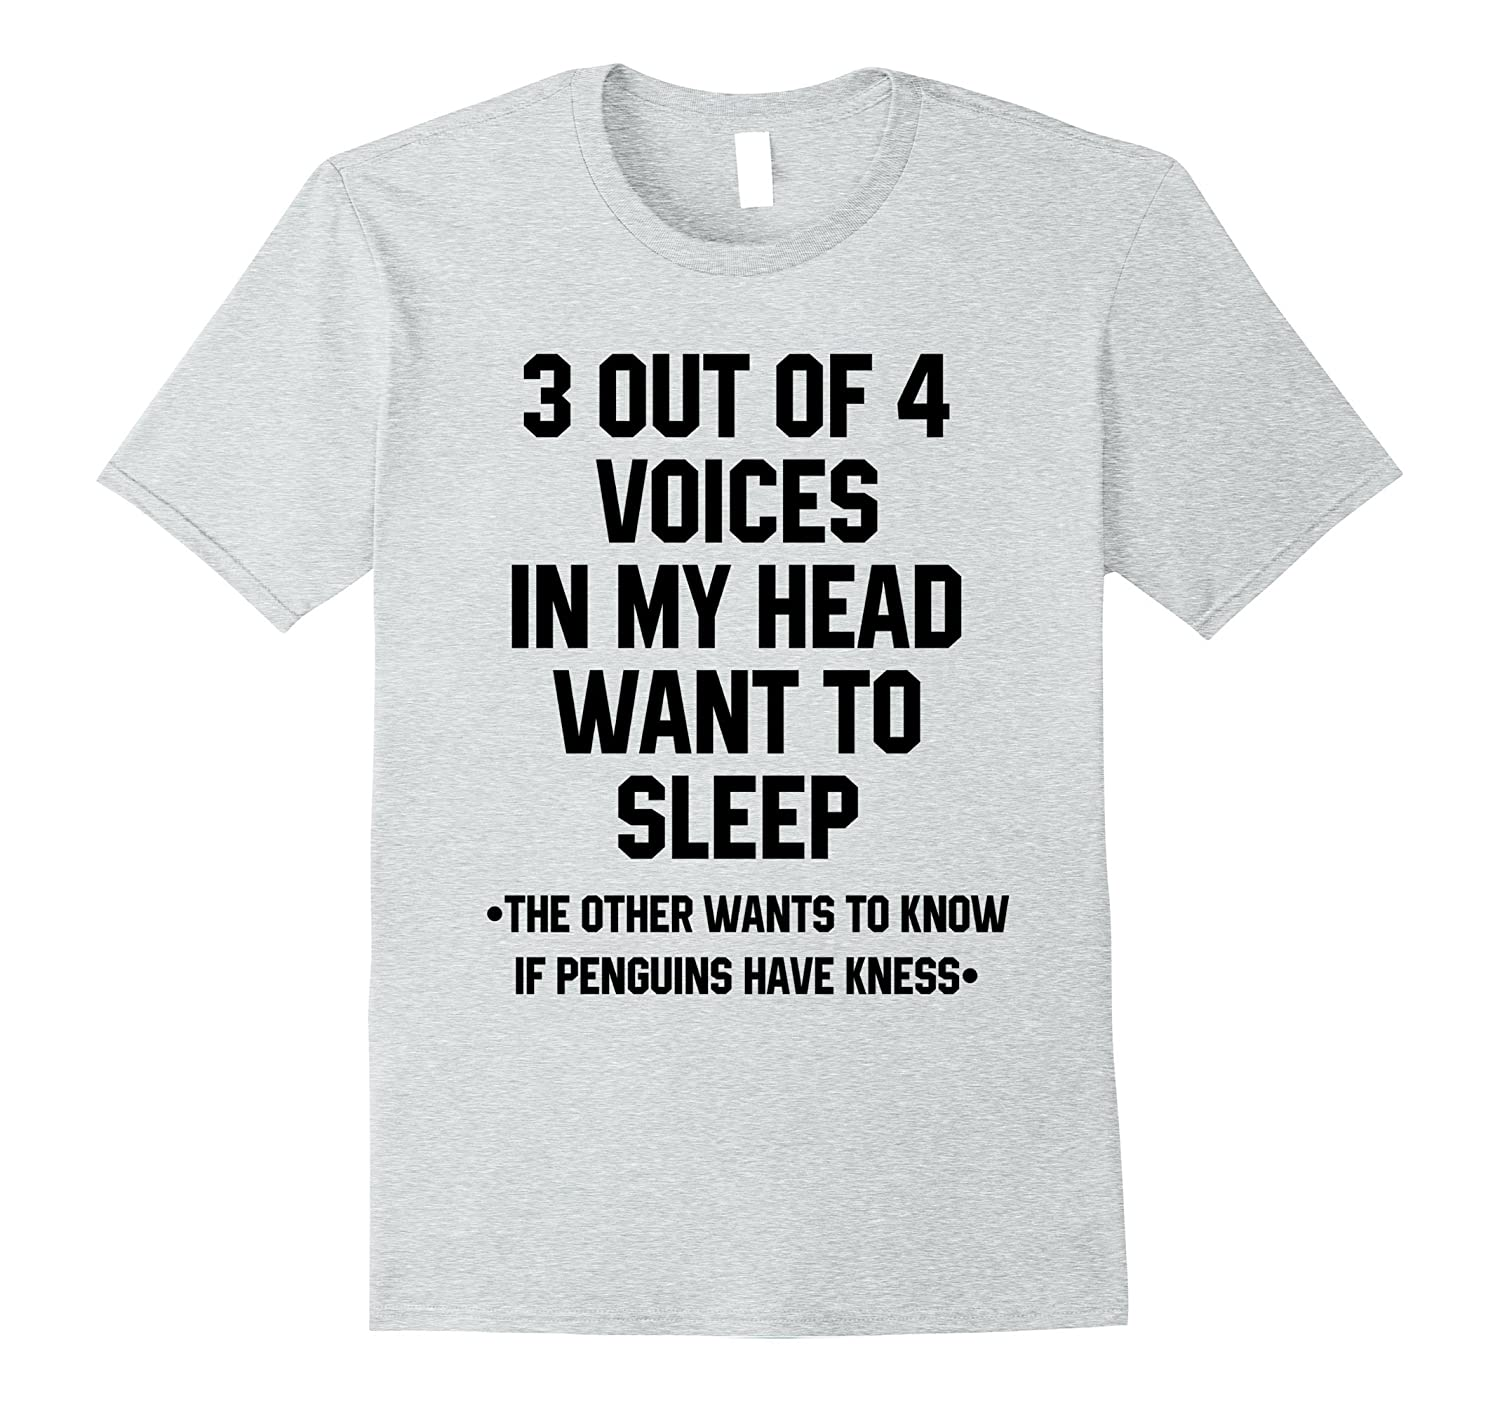 9d310ff32 3 Out Of 4 Voices In My Head Want To Sleep T Shirts Funny-Art ...